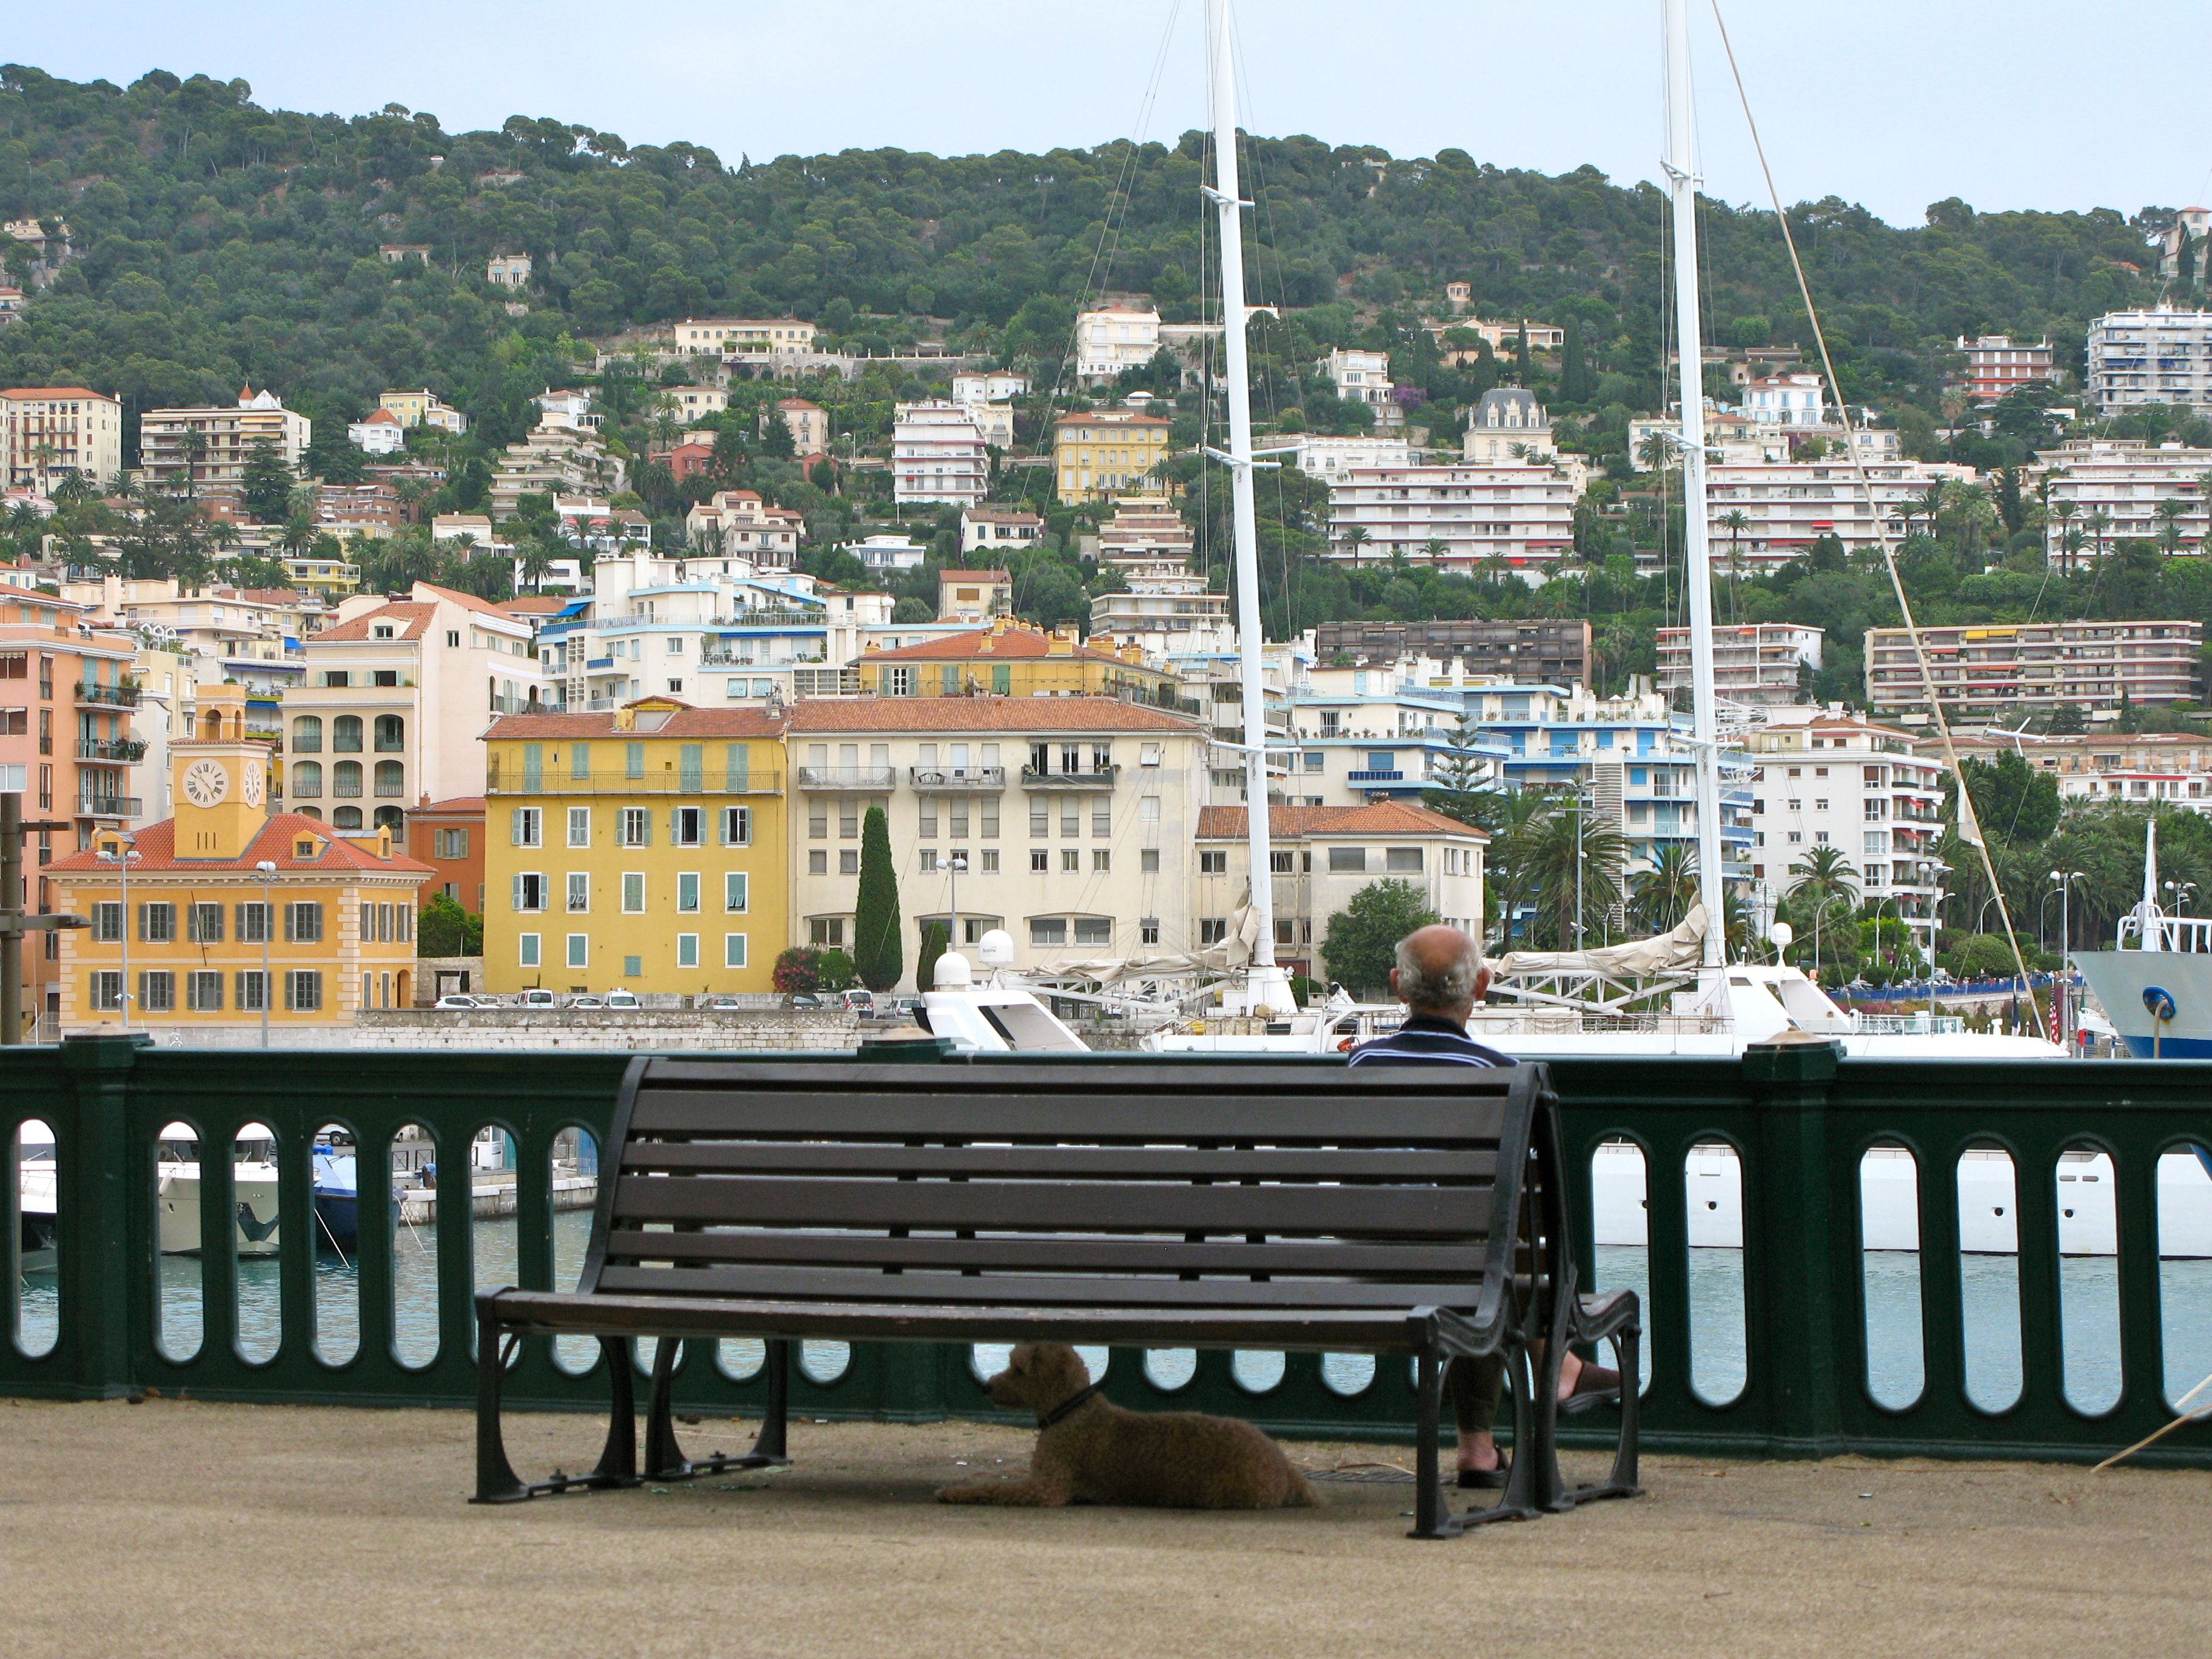 This view of the old port in Nice isn't too far from La Zucca Magica.